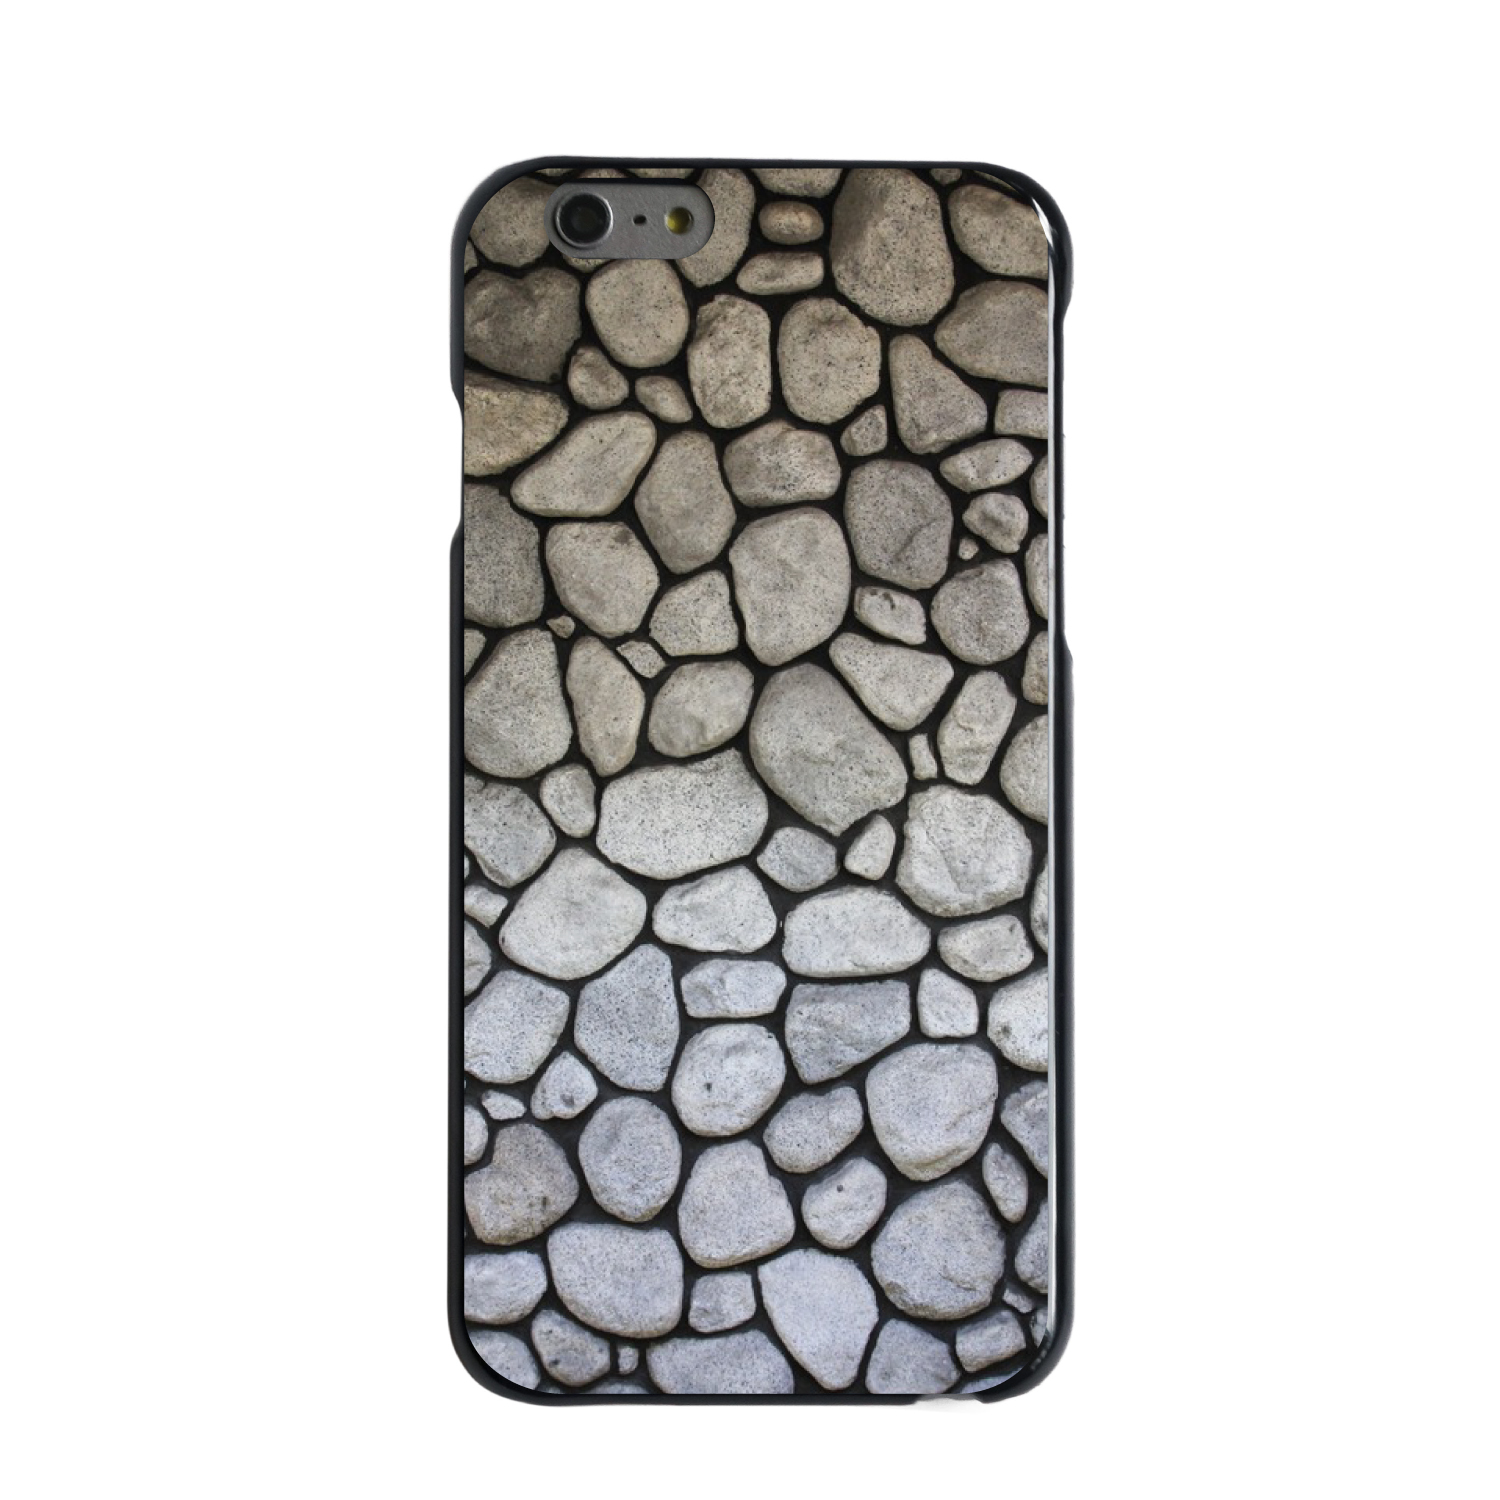 "CUSTOM Black Hard Plastic Snap-On Case for Apple iPhone 6 / 6S (4.7"" Screen) - Flag Stone Wall"